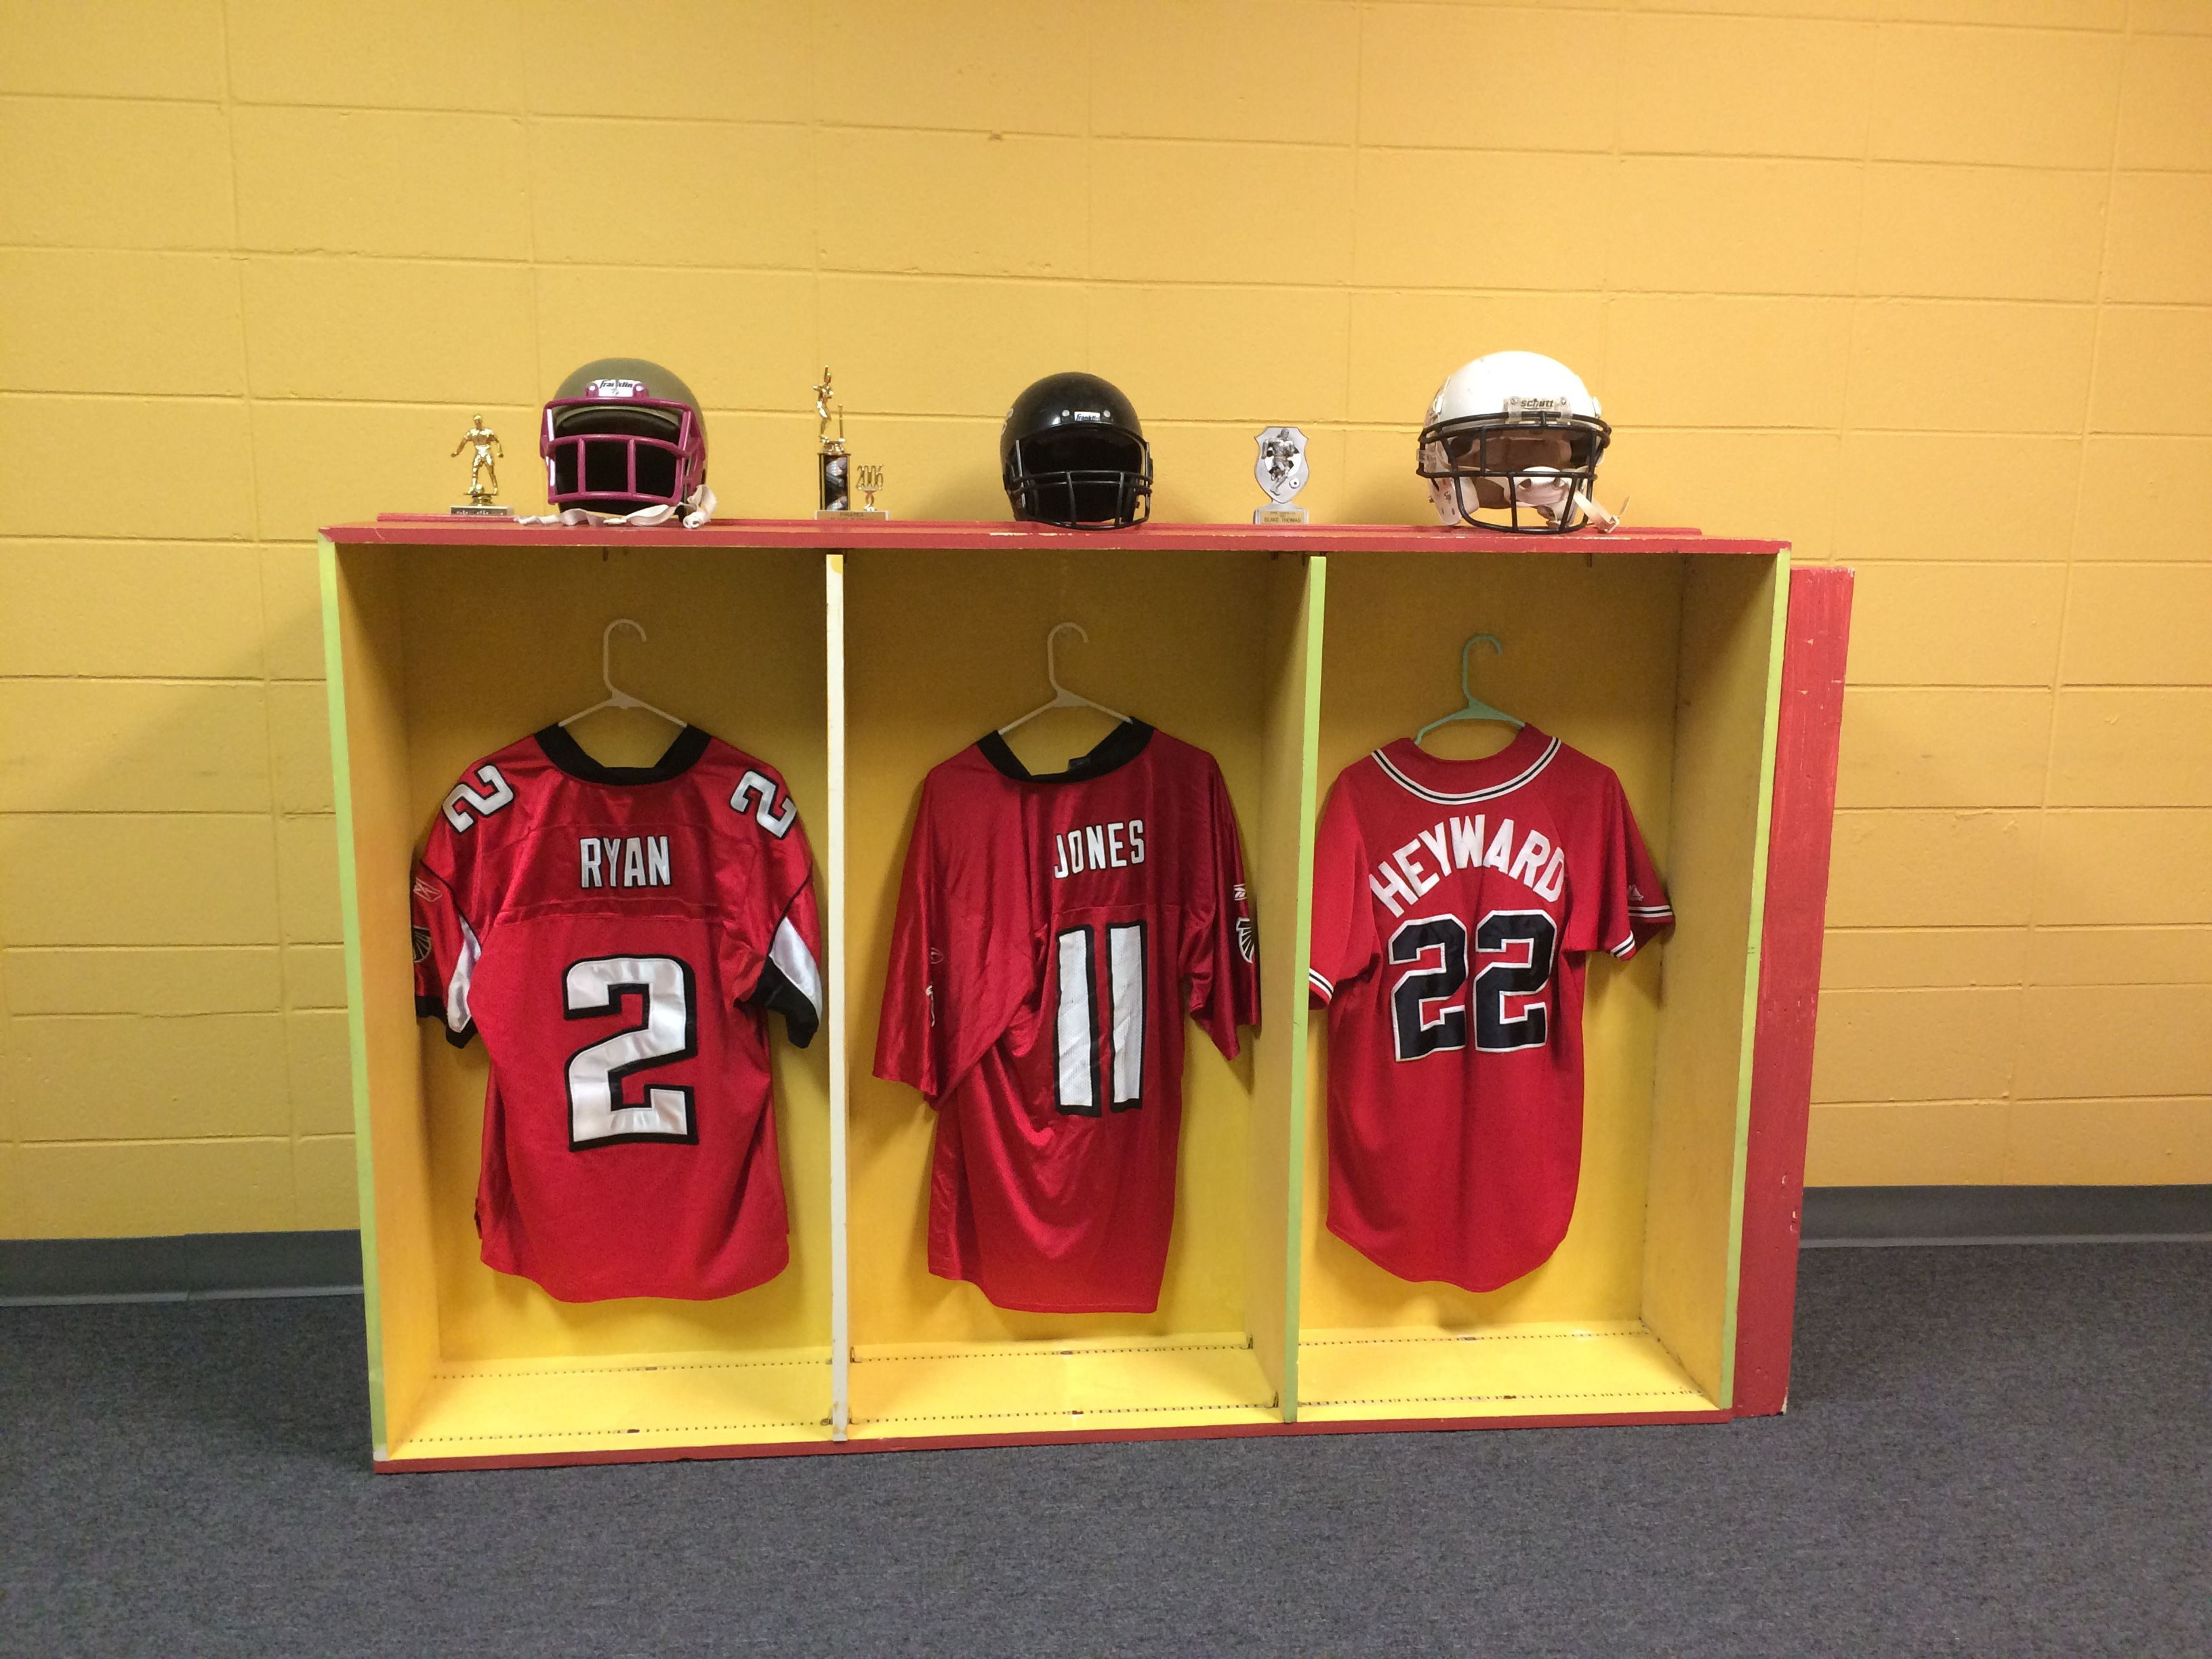 Locker Room For Go Fish S Victory Vbs Book Shelf Turned On Its Side Command Hooks Used To Hang Jerseys Vbs Themes Vbs Crafts Vbs